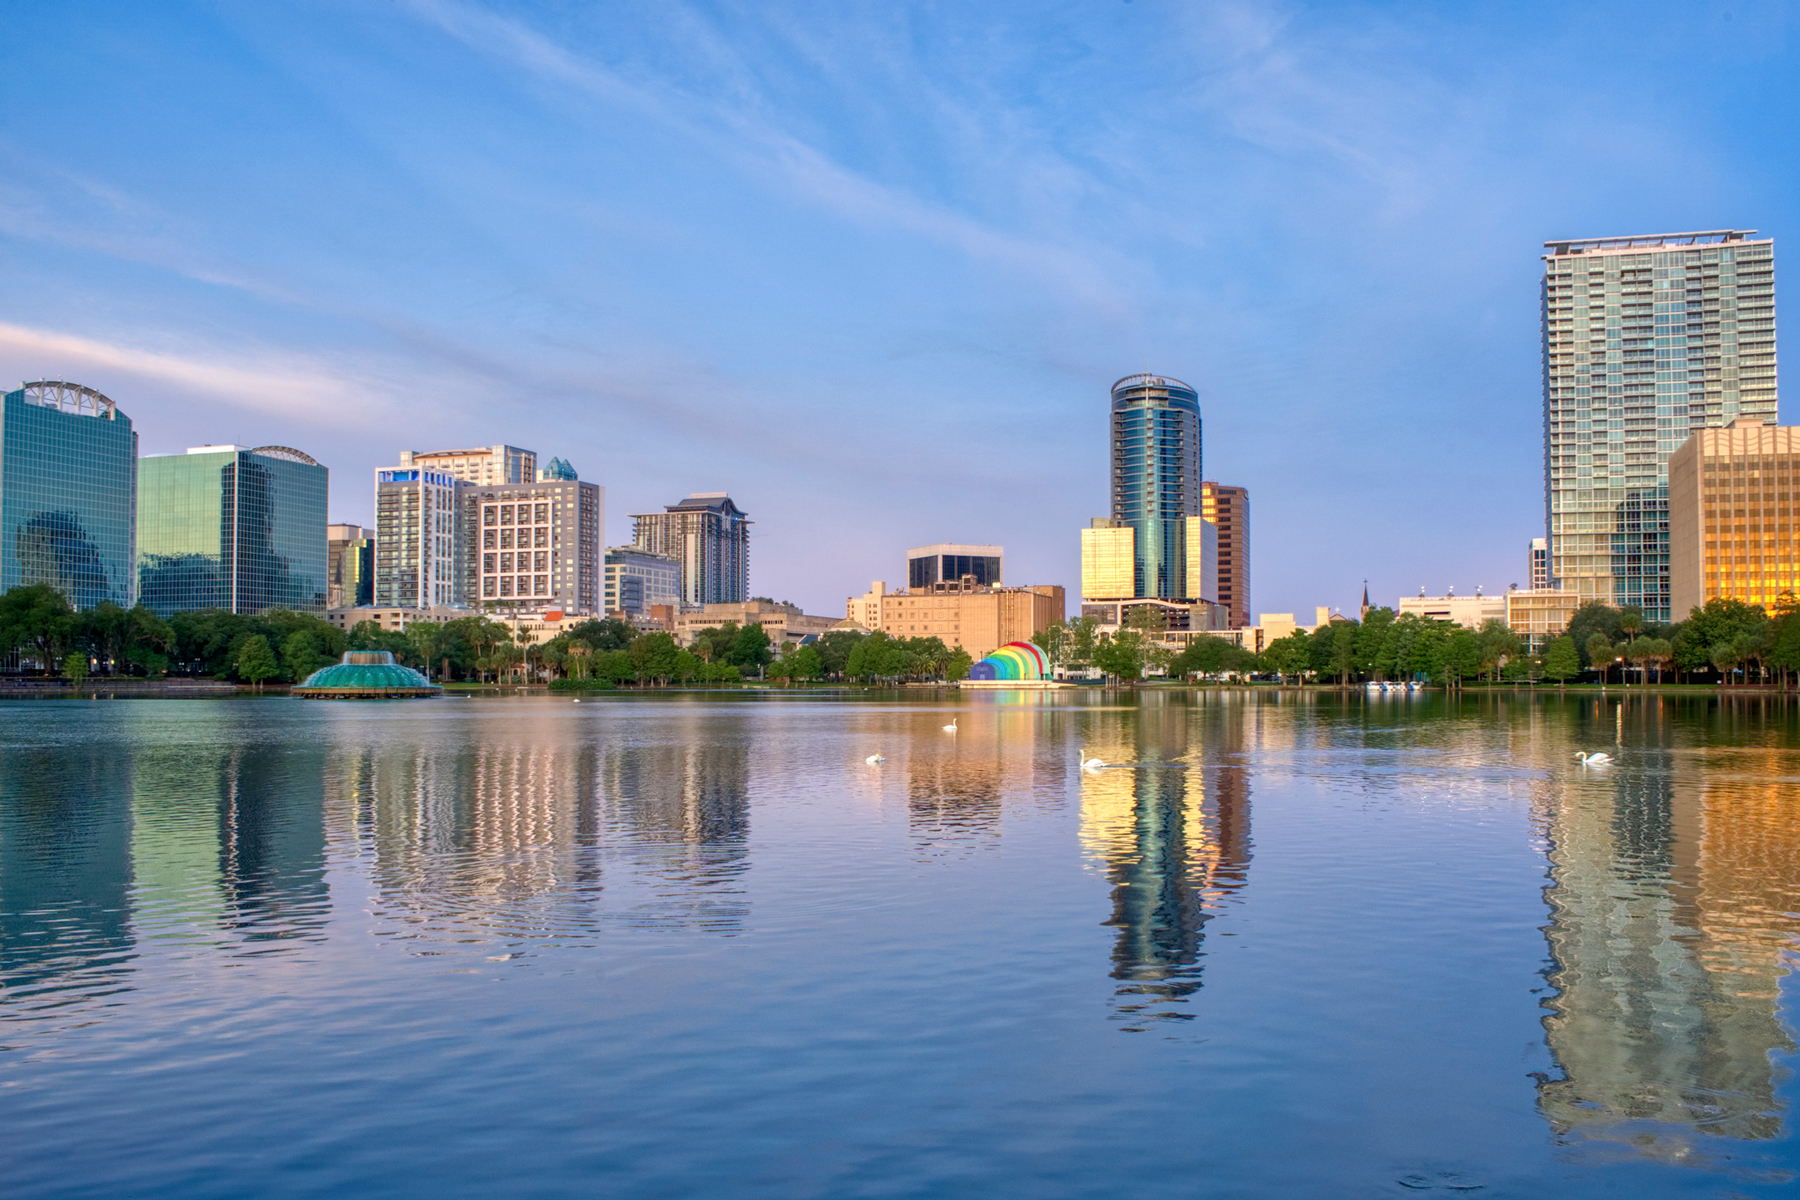 Vibrant Sunrise Over Lake Eola Park and the Orlando Skyline in Downtown Orlando. Florida